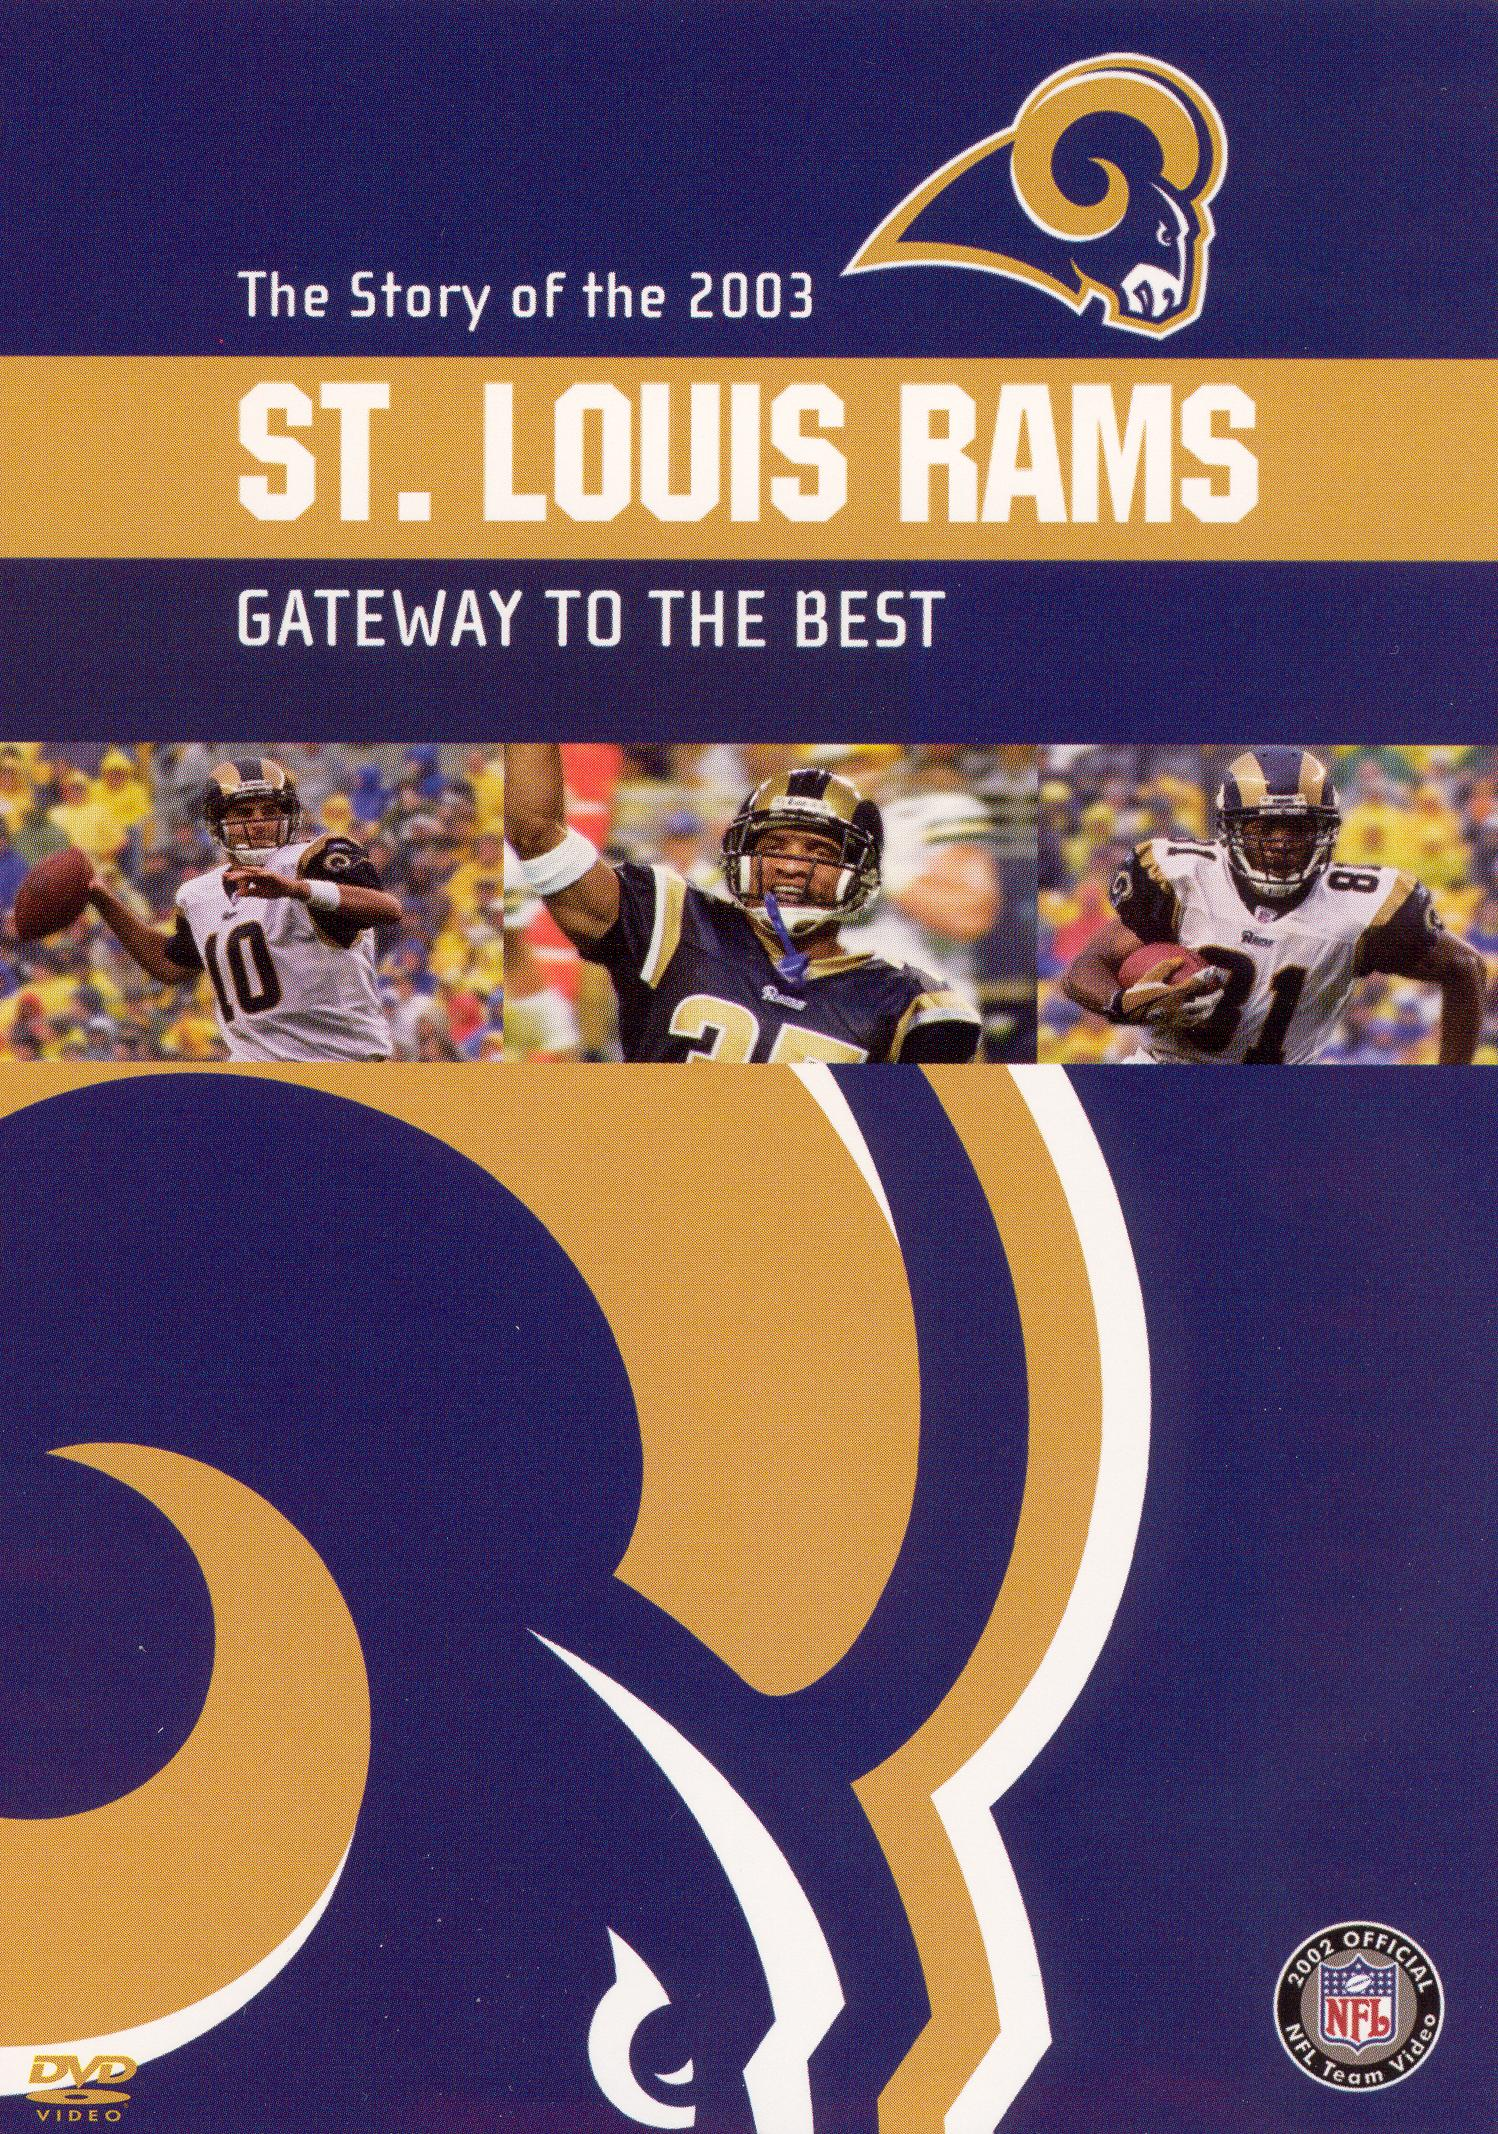 NFL: 2003 St. Louis Rams Team Video - Gateway to the Best